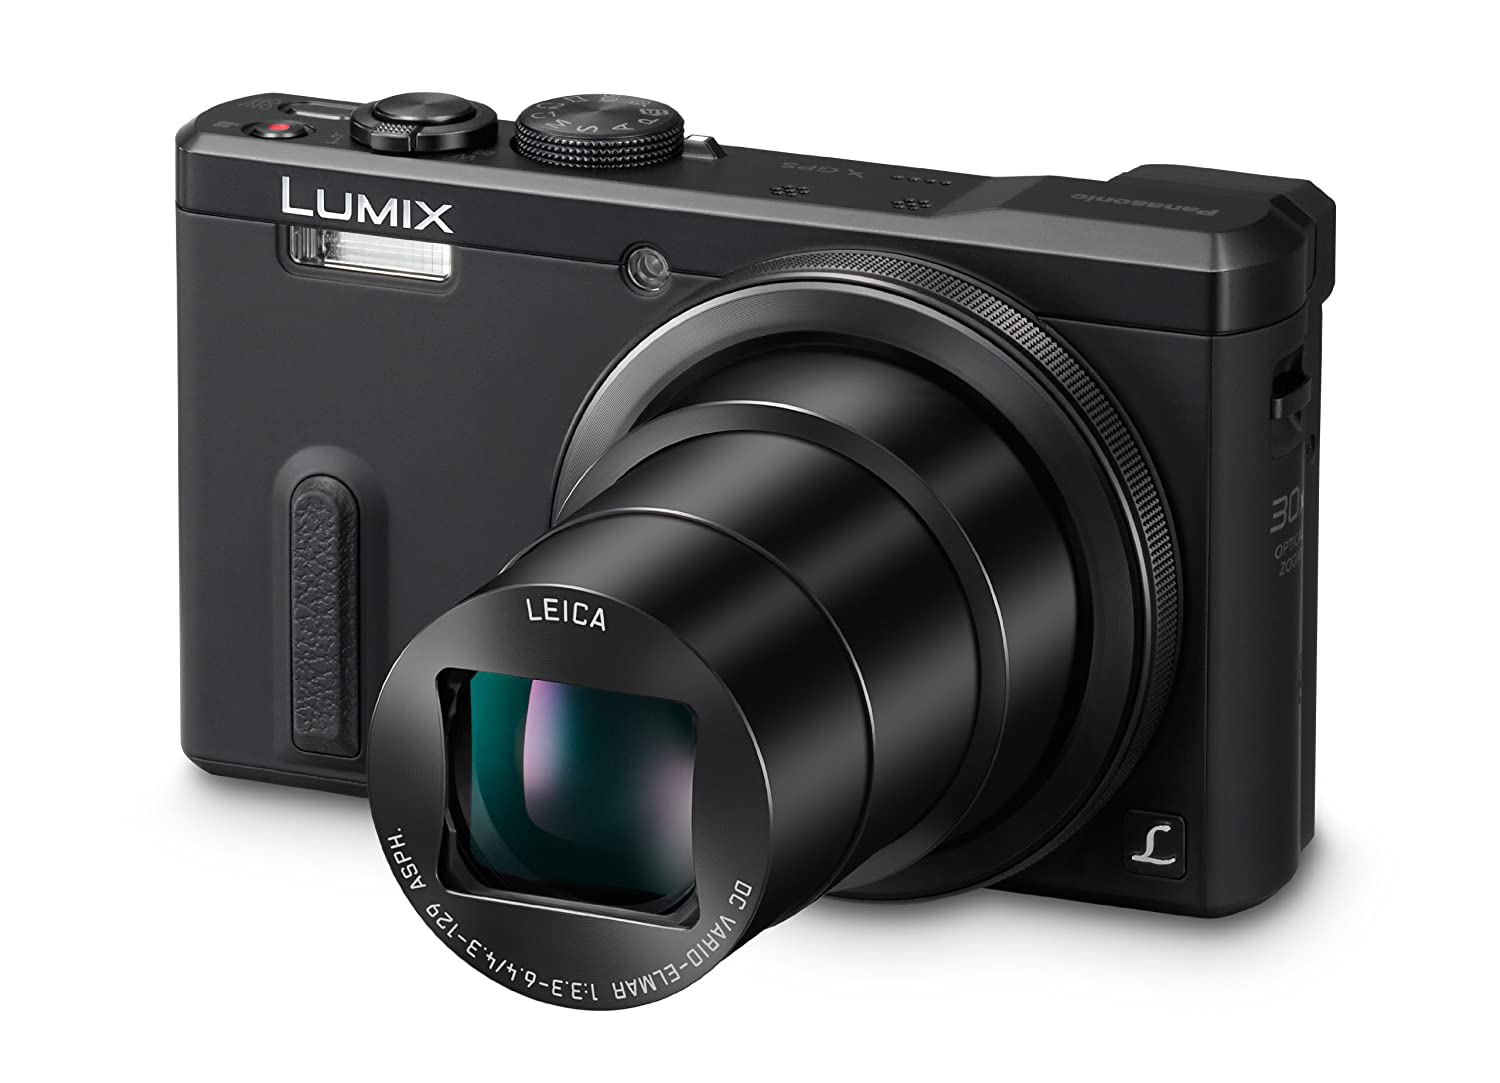 Amazon.com : Panasonic DMC-ZS40K Digital Camera with 3-Inch LCD (Black) :  Camera & Photo